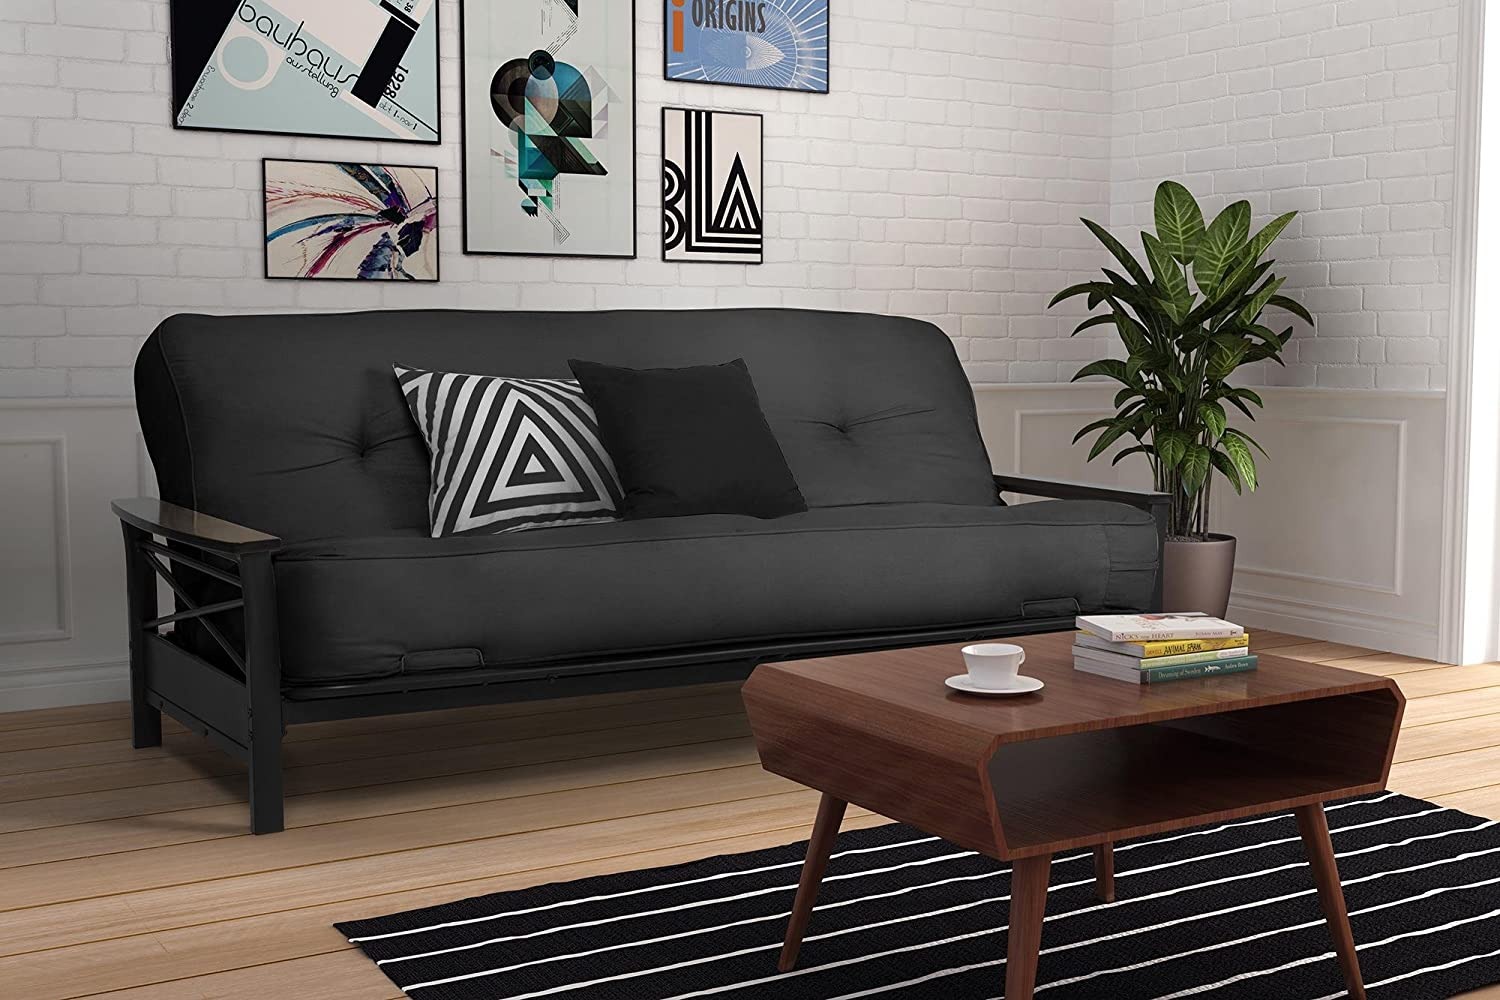 amazon    dhp 8 inch independently encased coil futon mattress with certipur us certified foam full size grey  kitchen  u0026 dining amazon    dhp 8 inch independently encased coil futon mattress      rh   amazon